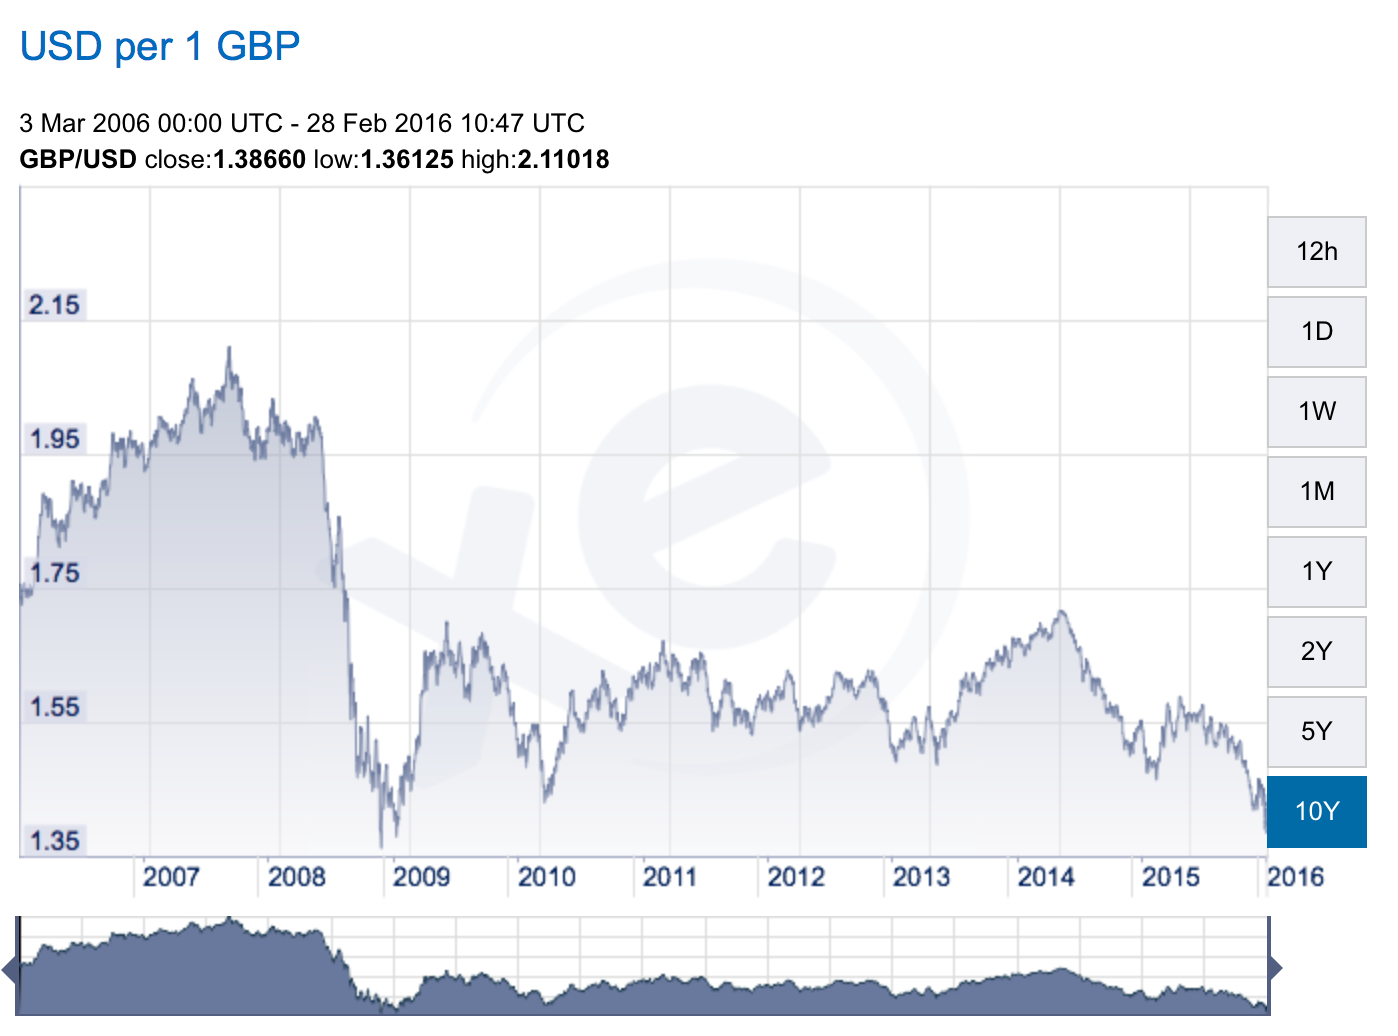 The British Pound relative to the US Dollar was at a low not seen since 2009.....